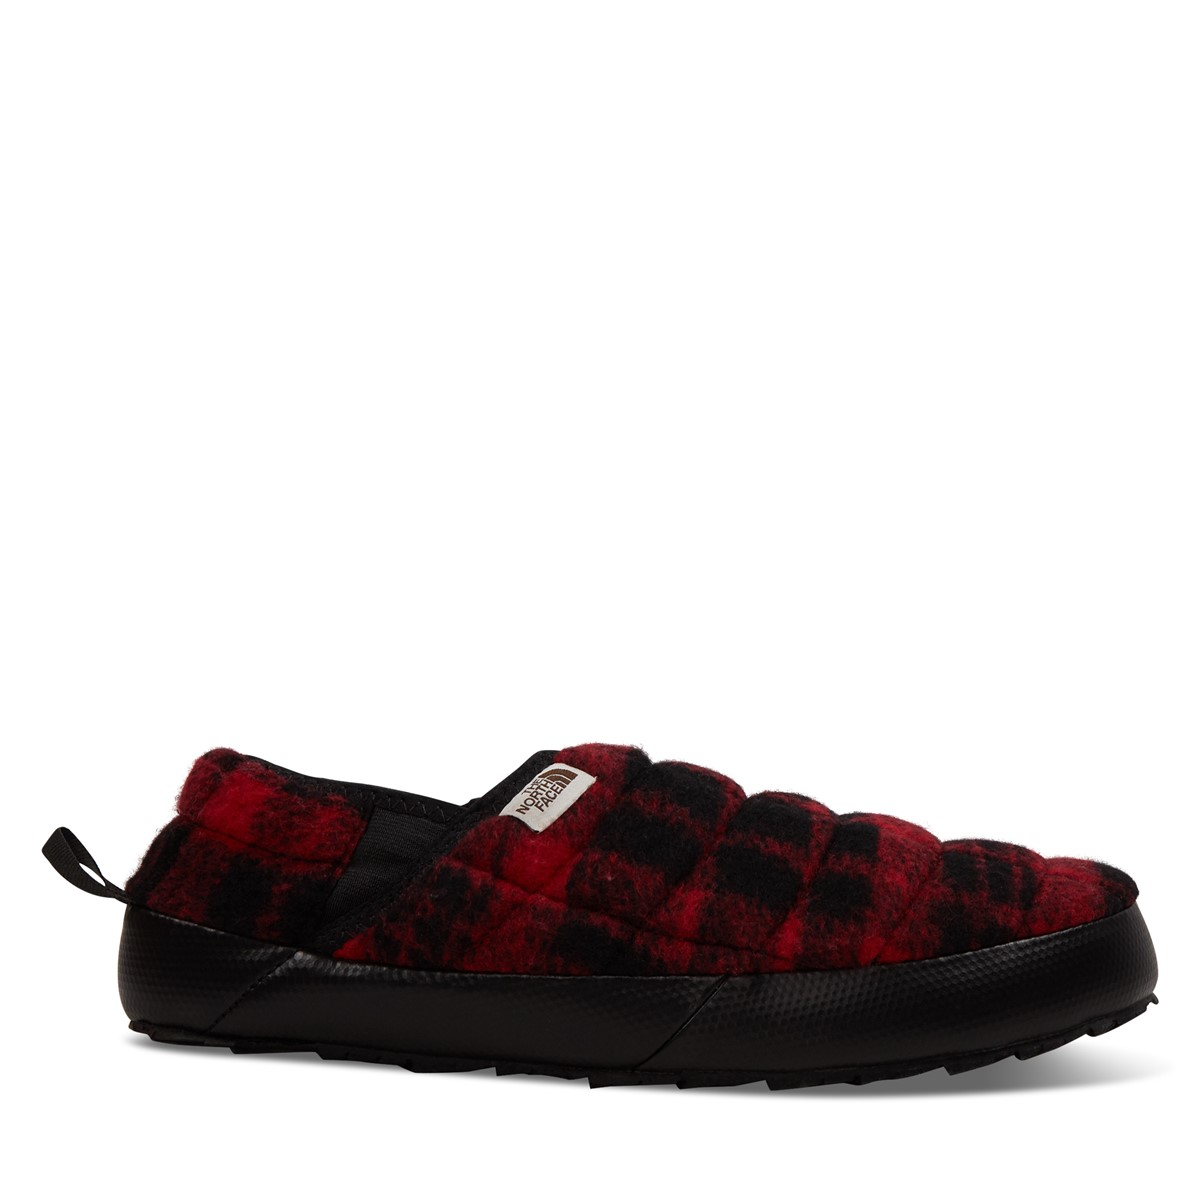 Men's Thermoball Traction Mule V Plaid Slippers in Red